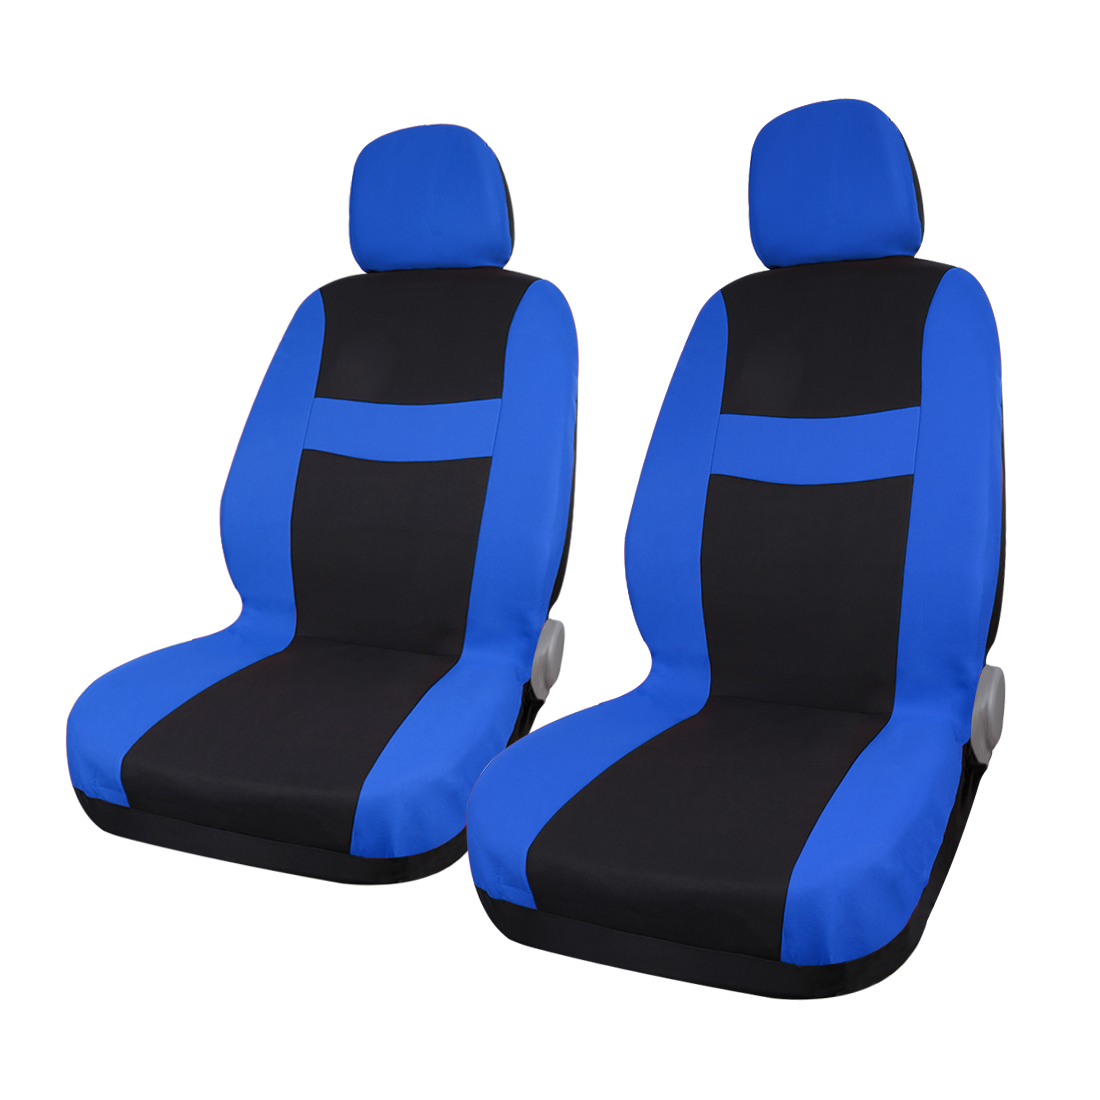 Car Assessories Leather Chair Seaming Housing For Automobile And H3